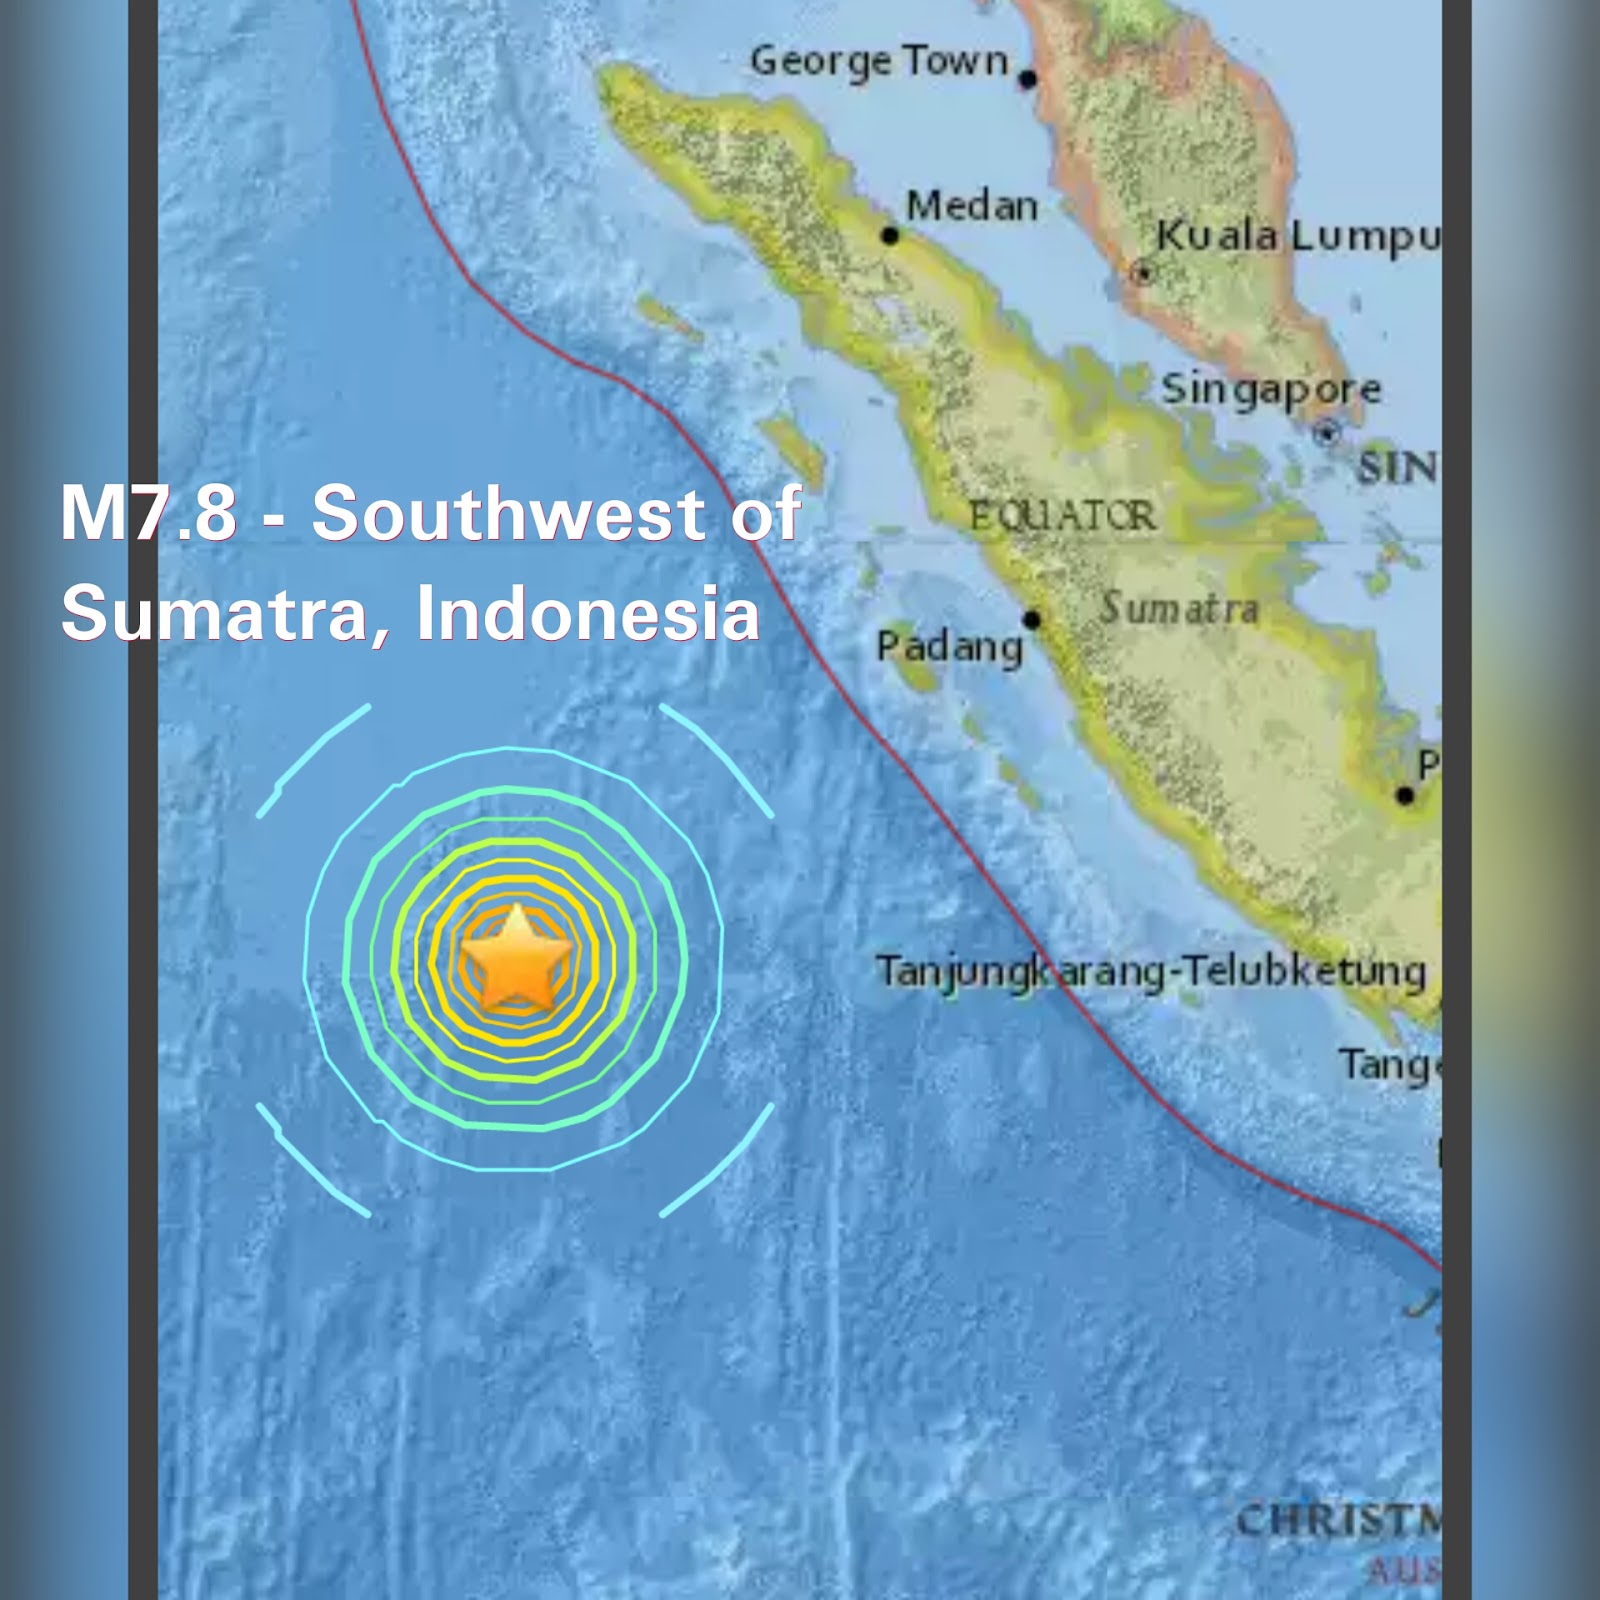 Sumatra, Indonesia earthquake